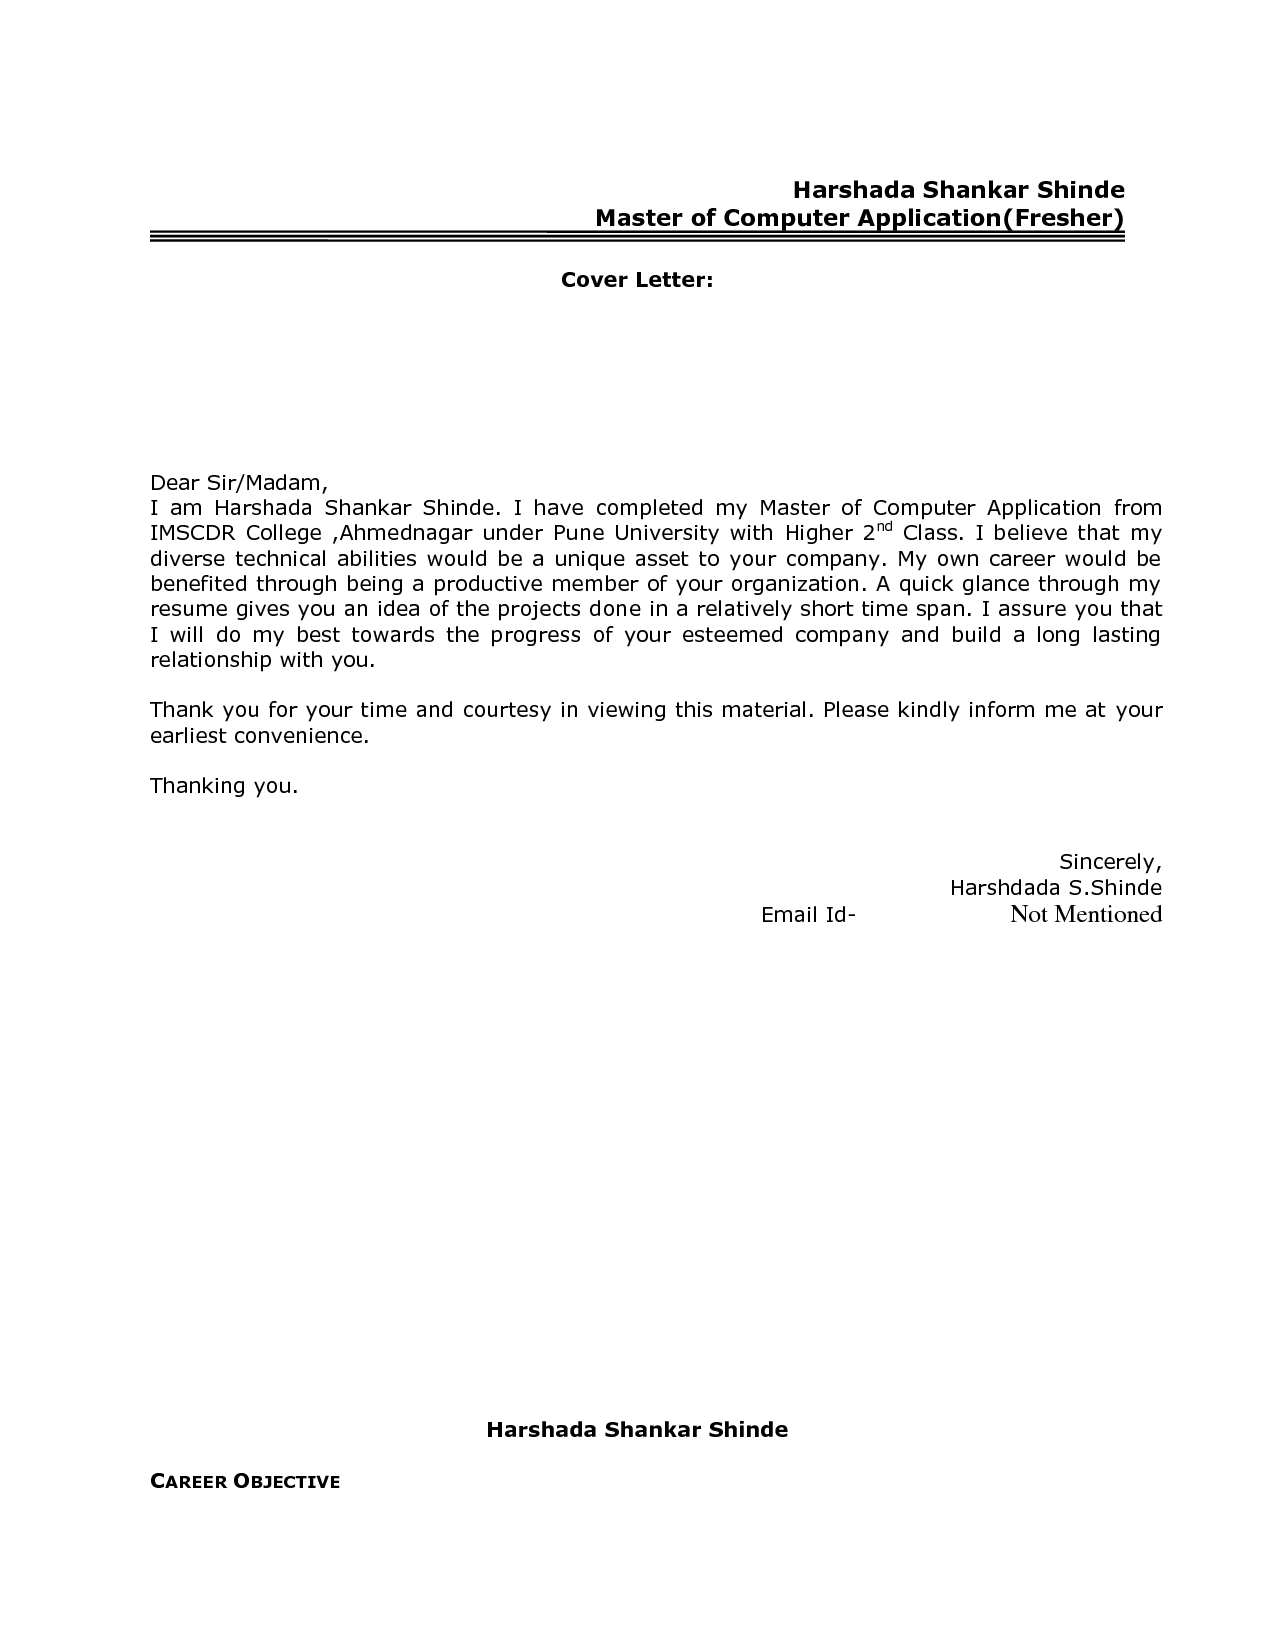 best resume cover letter format for freshers govt jobcover letter for resume cover letter